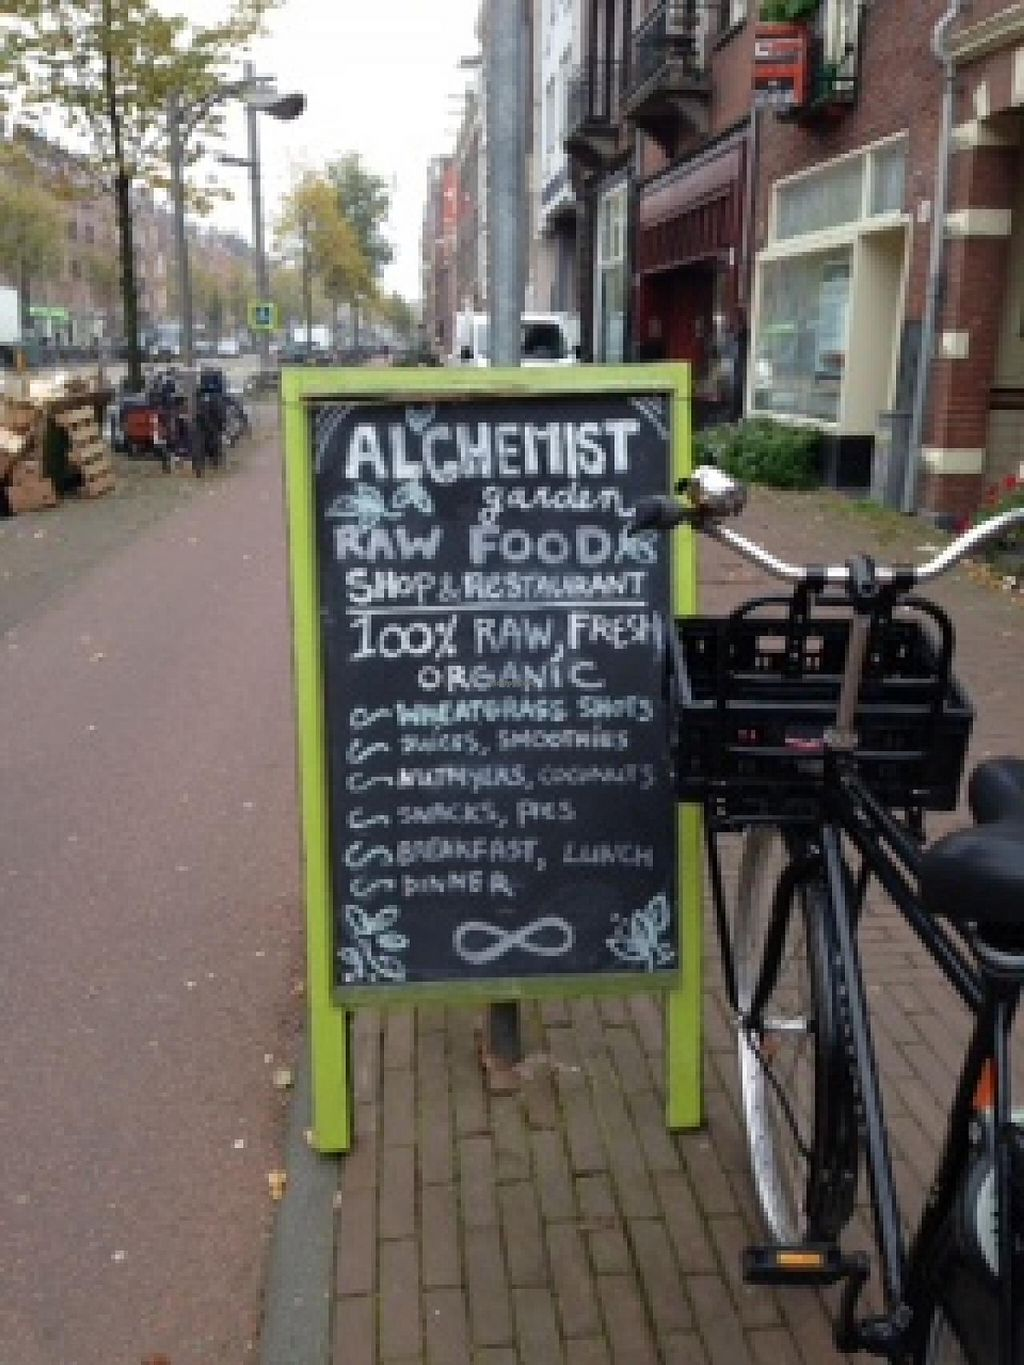 """Photo of Alchemist Garden  by <a href=""""/members/profile/lucyblack74"""">lucyblack74</a> <br/>100% raw vegan cafe with a range of very healthy foods <br/> October 31, 2014  - <a href='/contact/abuse/image/26197/84283'>Report</a>"""